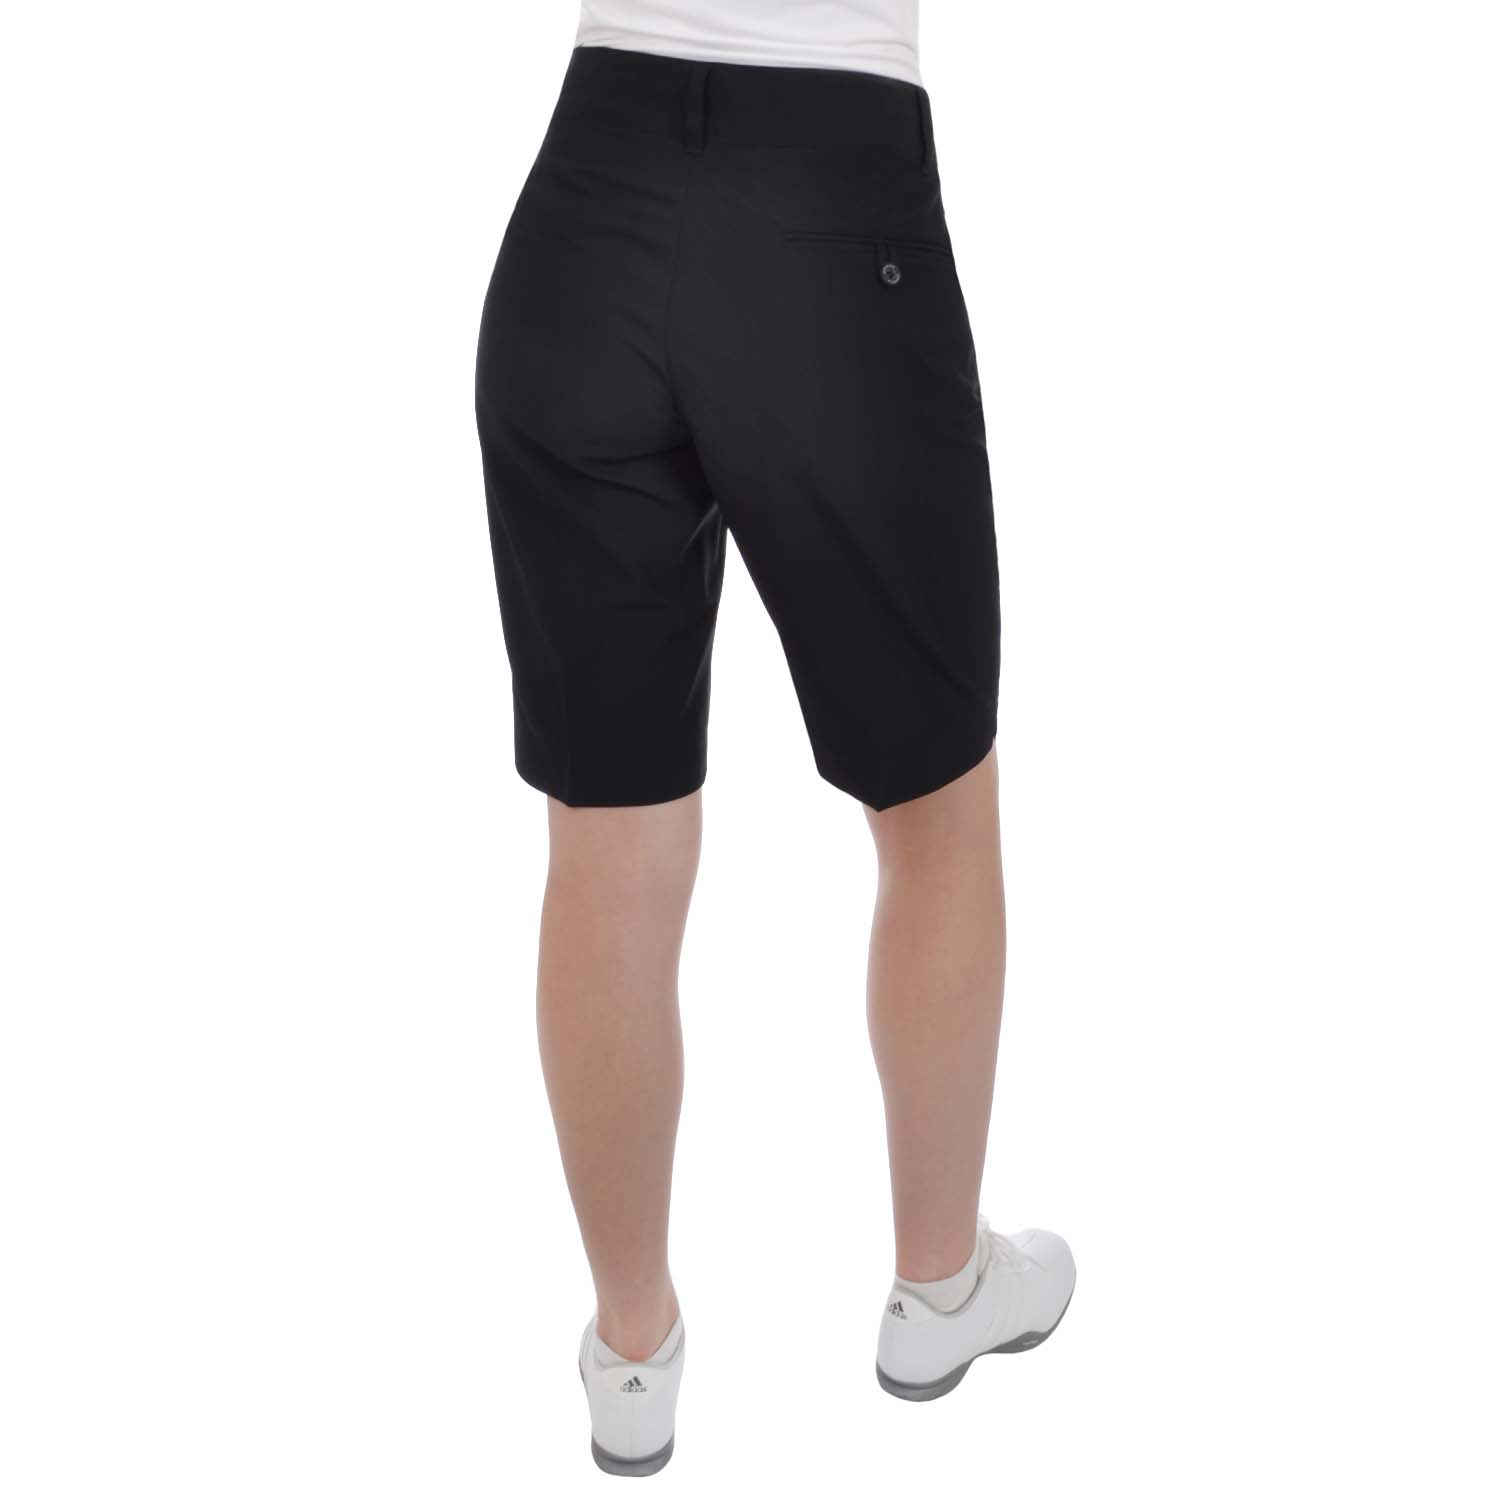 Original Nike Golf Jogger Womens Pants Sale Black  Nike Women Pants P83o7384